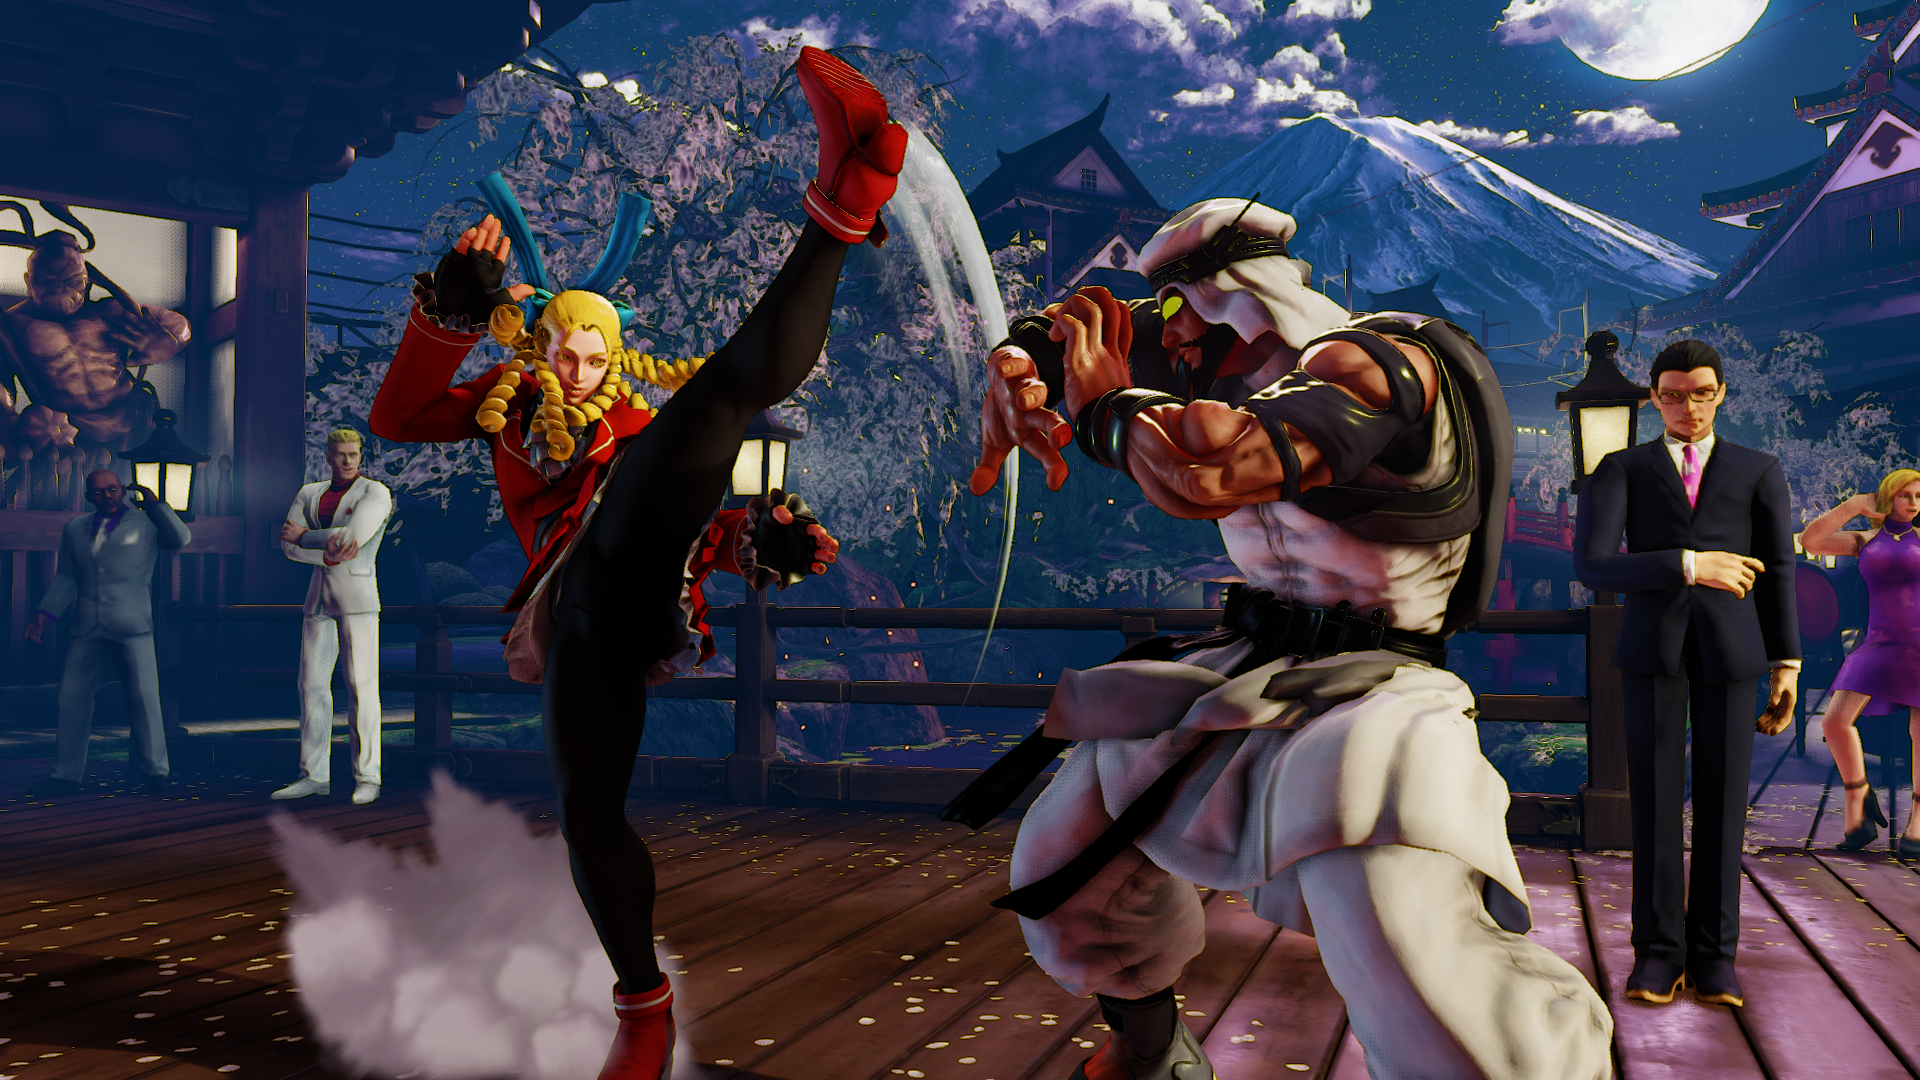 New Street Fighter V Trailer Lays Out its Features